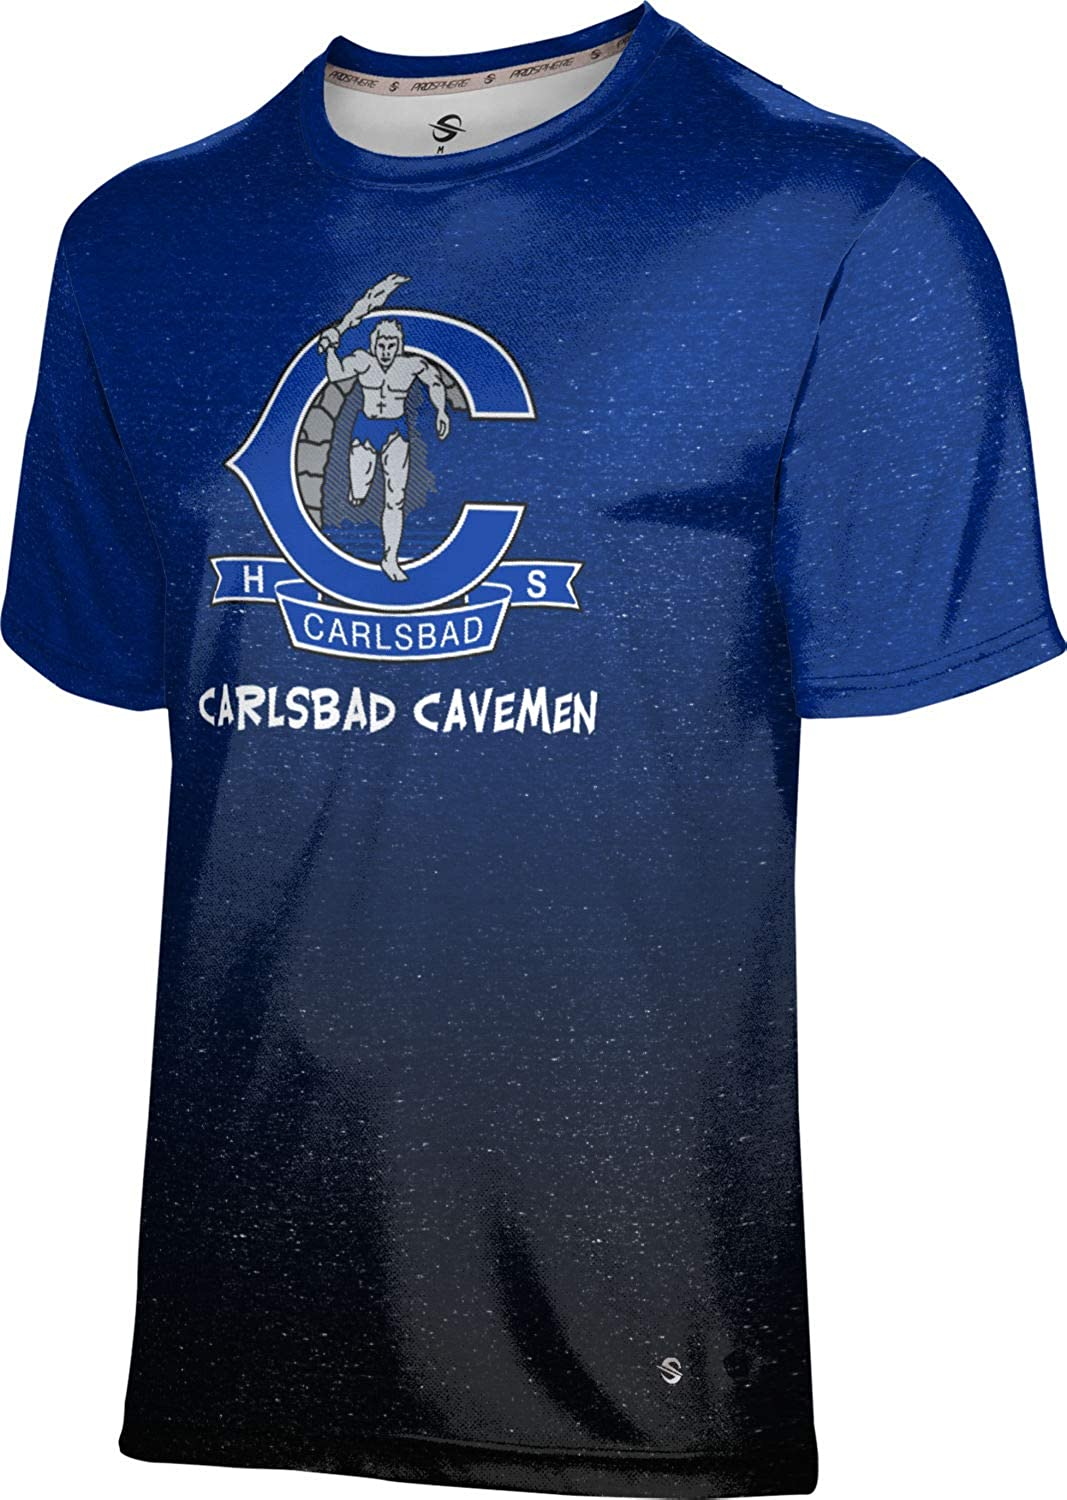 Long Beach Mall ProSphere Carlsbad High School T-Shirt Ombre Factory outlet Performance Men's